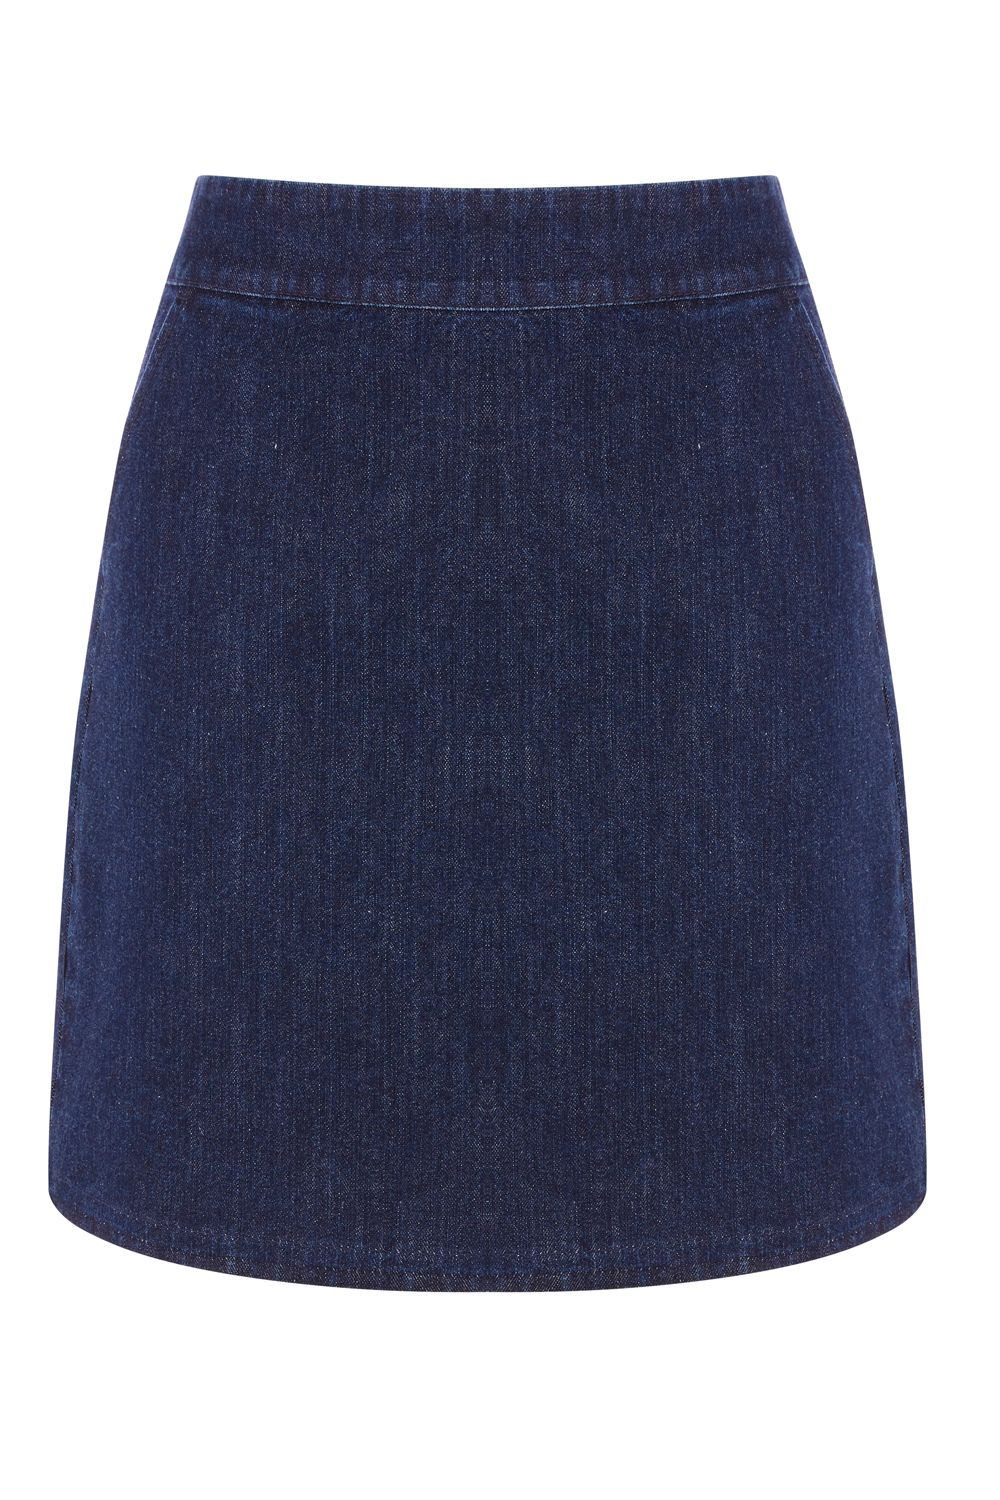 Warehouse A Line Denim Skirt, Denim Indigo